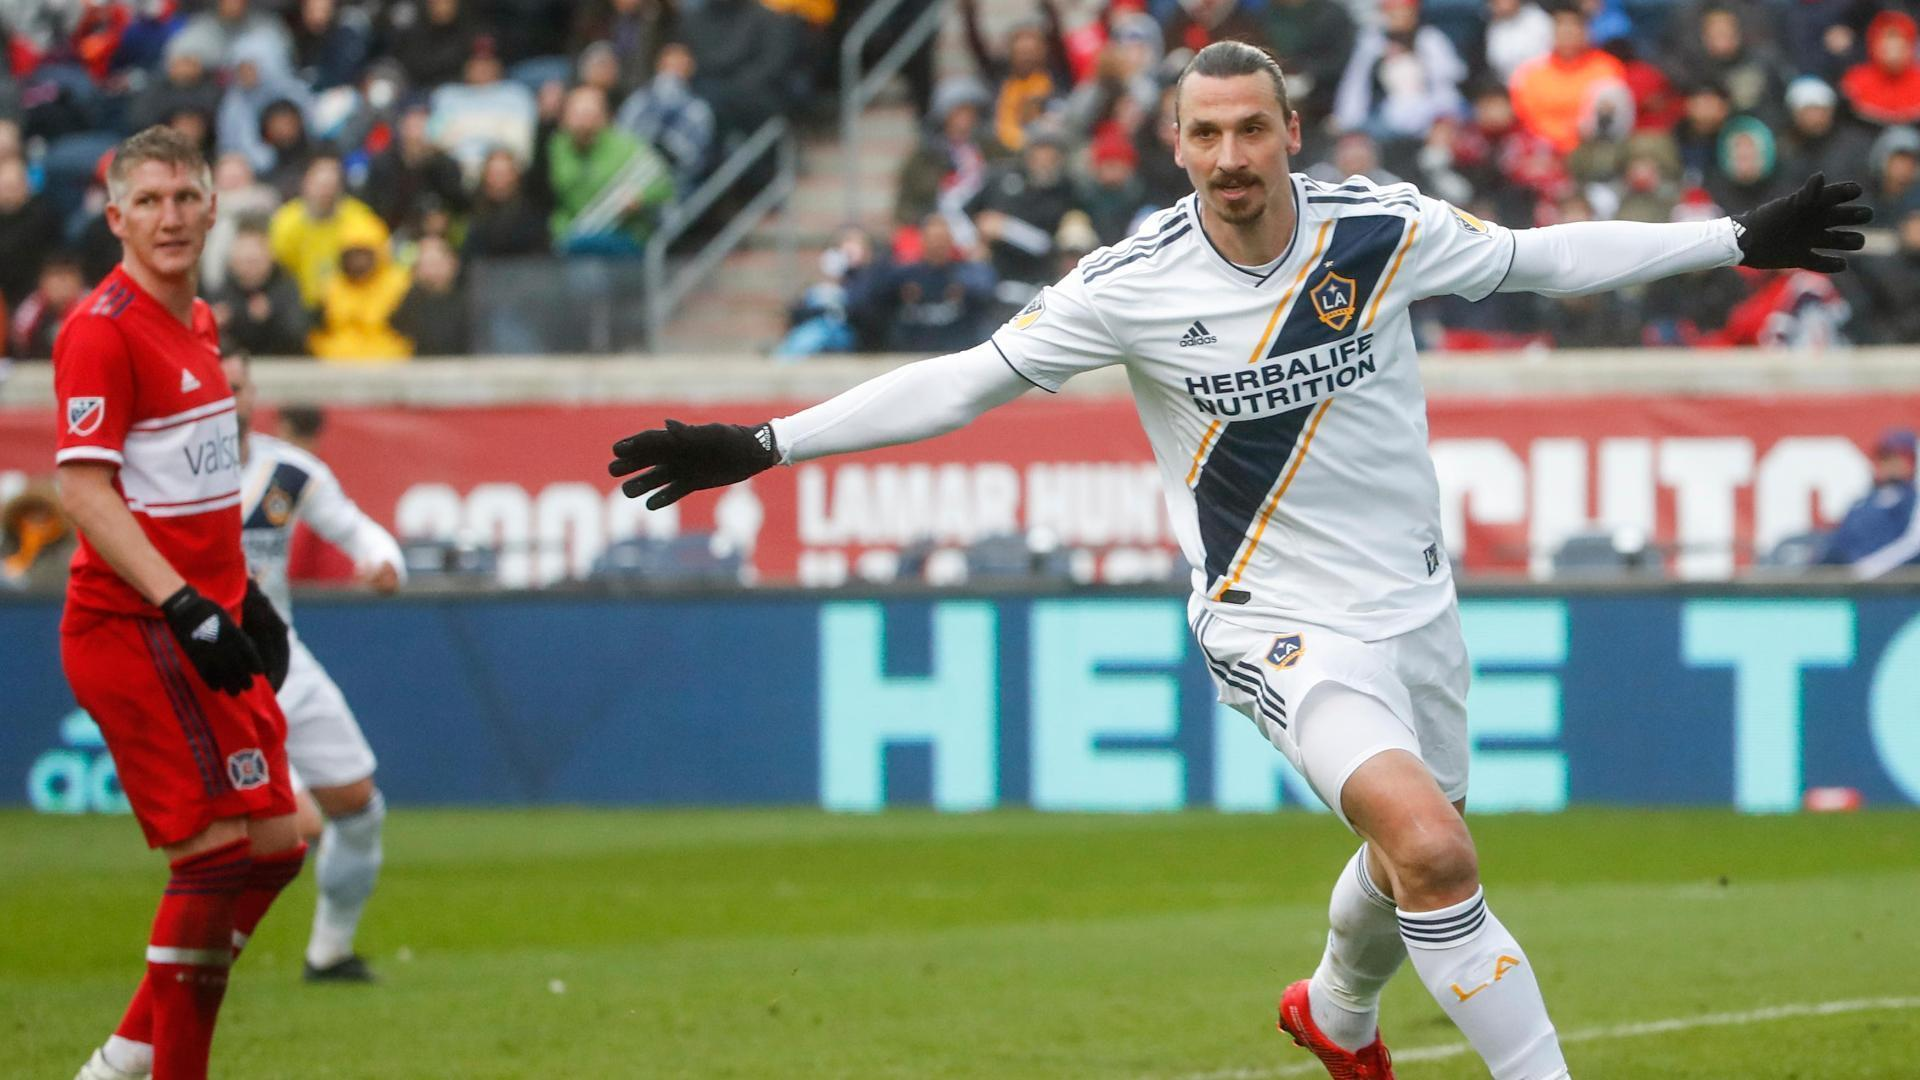 Ibrahimovic scores winner in first LA Galaxy start - Via MLS